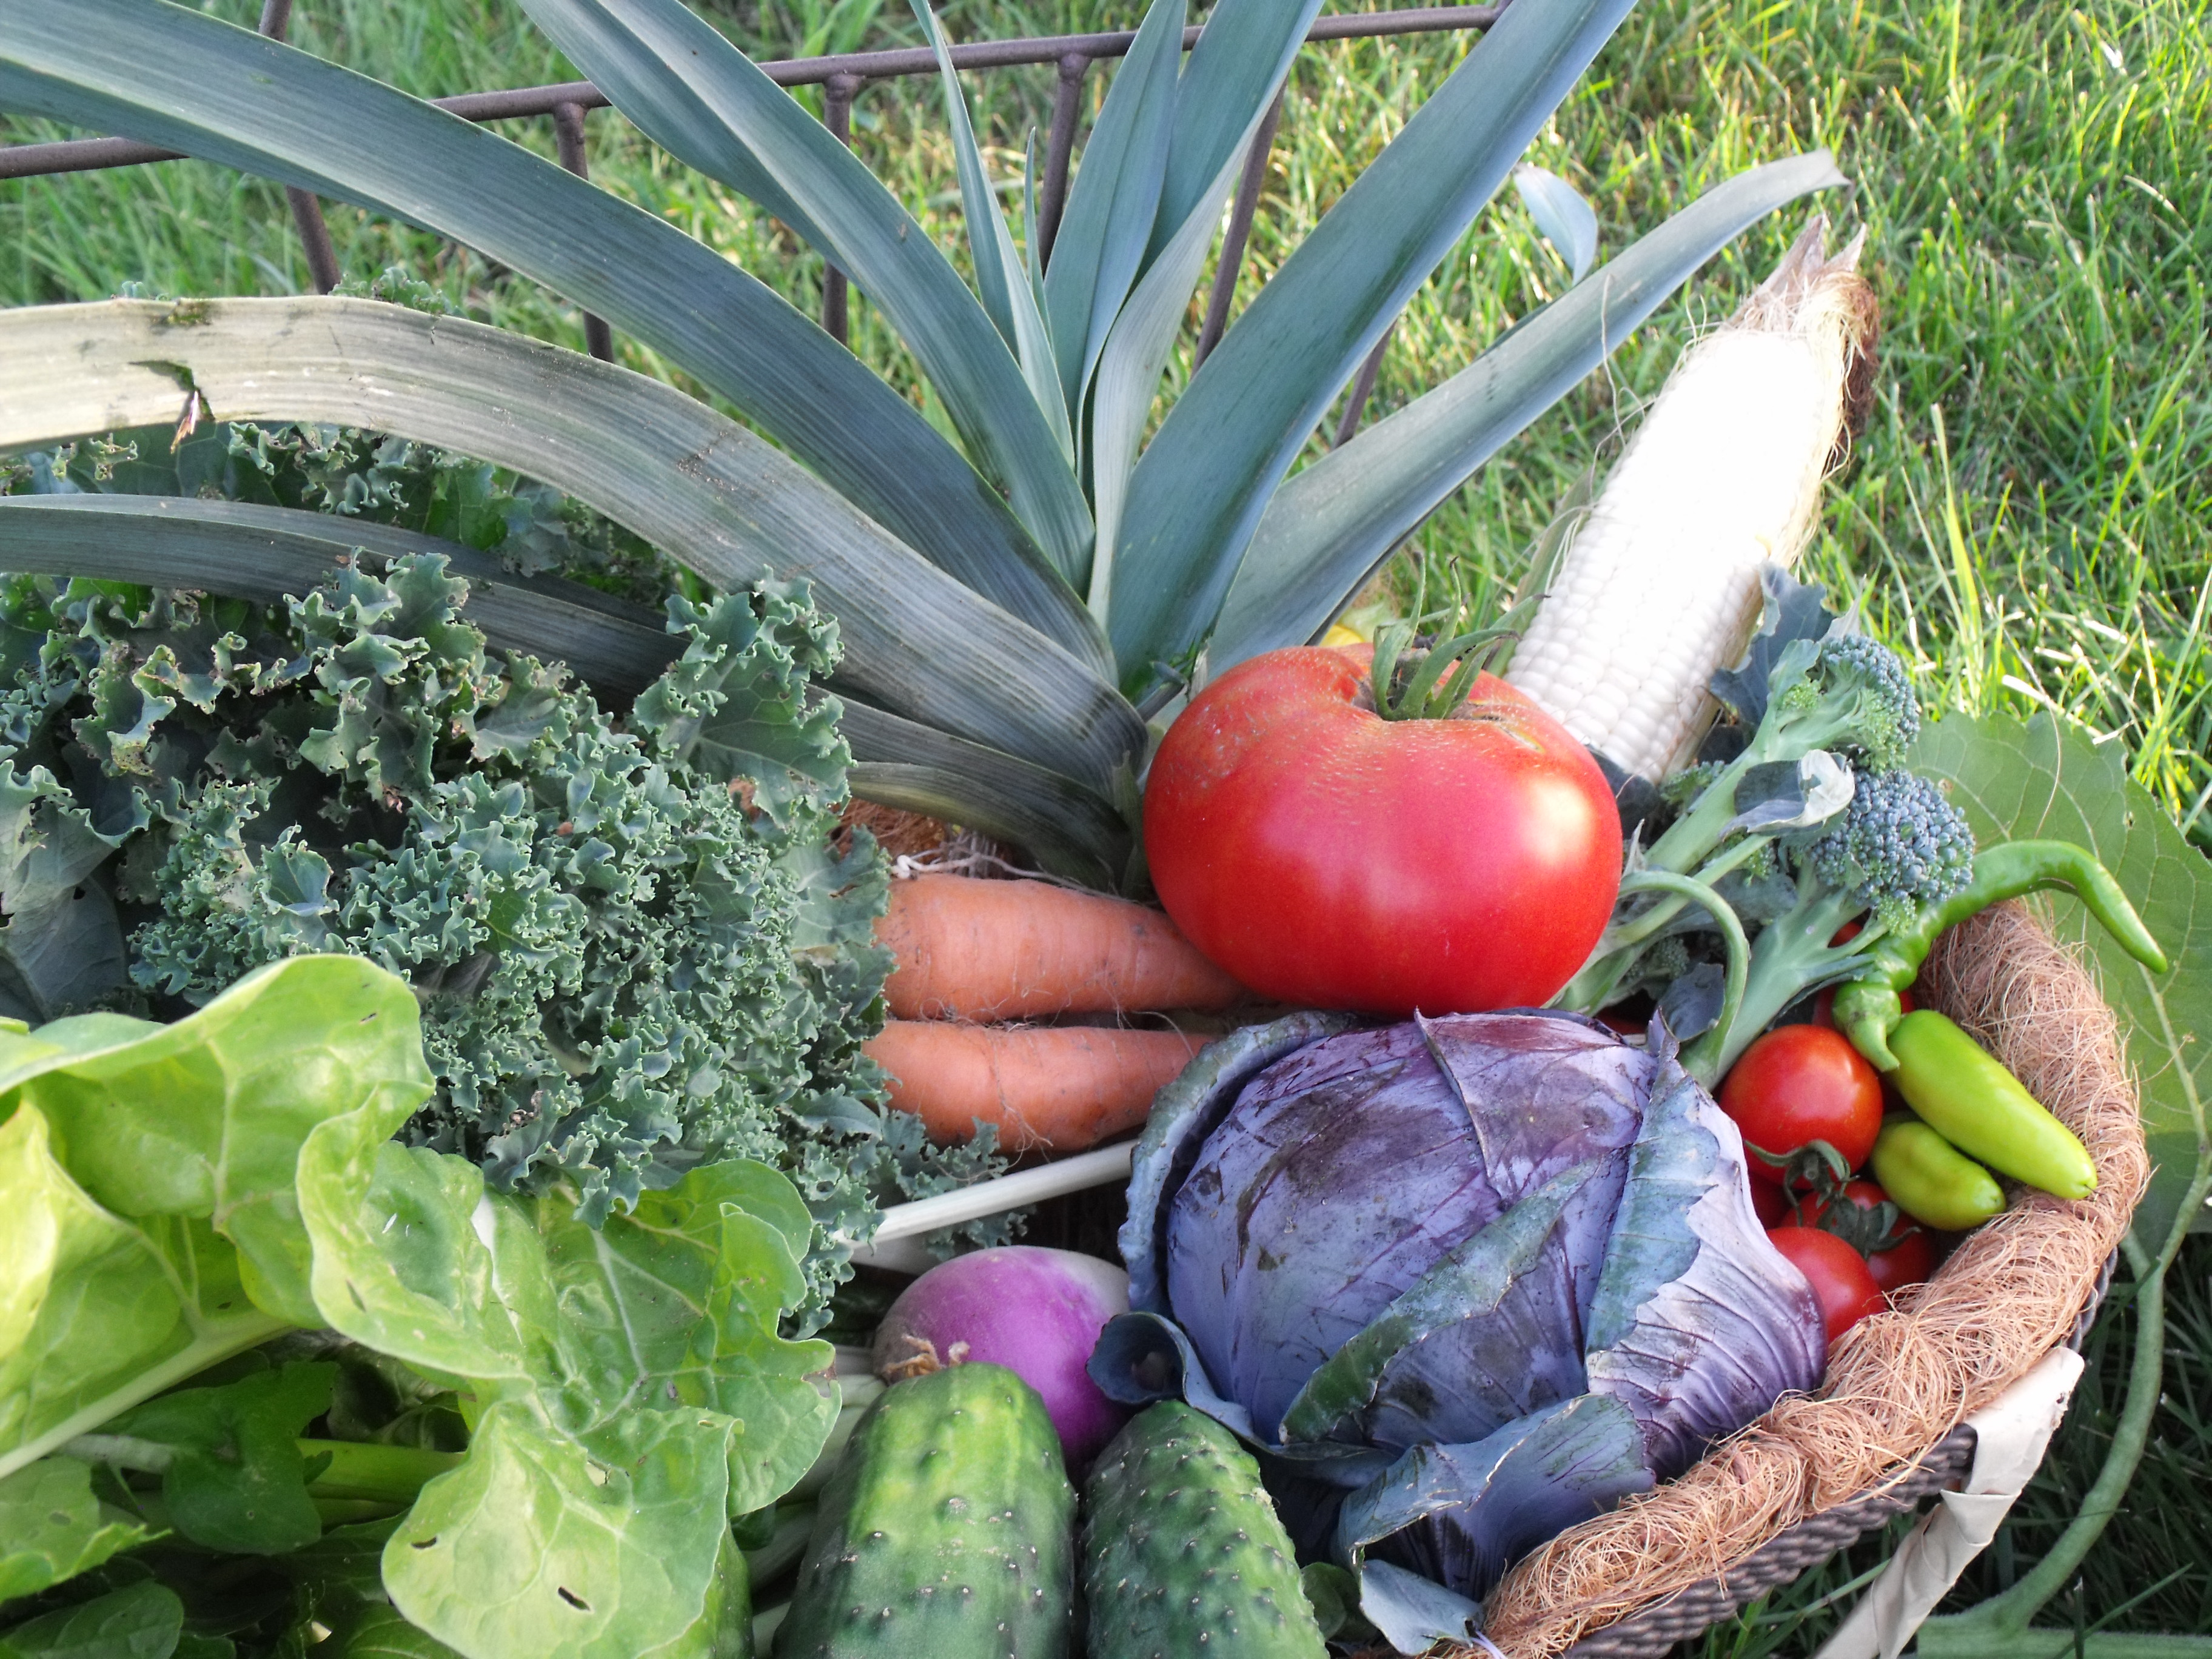 Halcyon Acres chemical-free produce in Roanoke